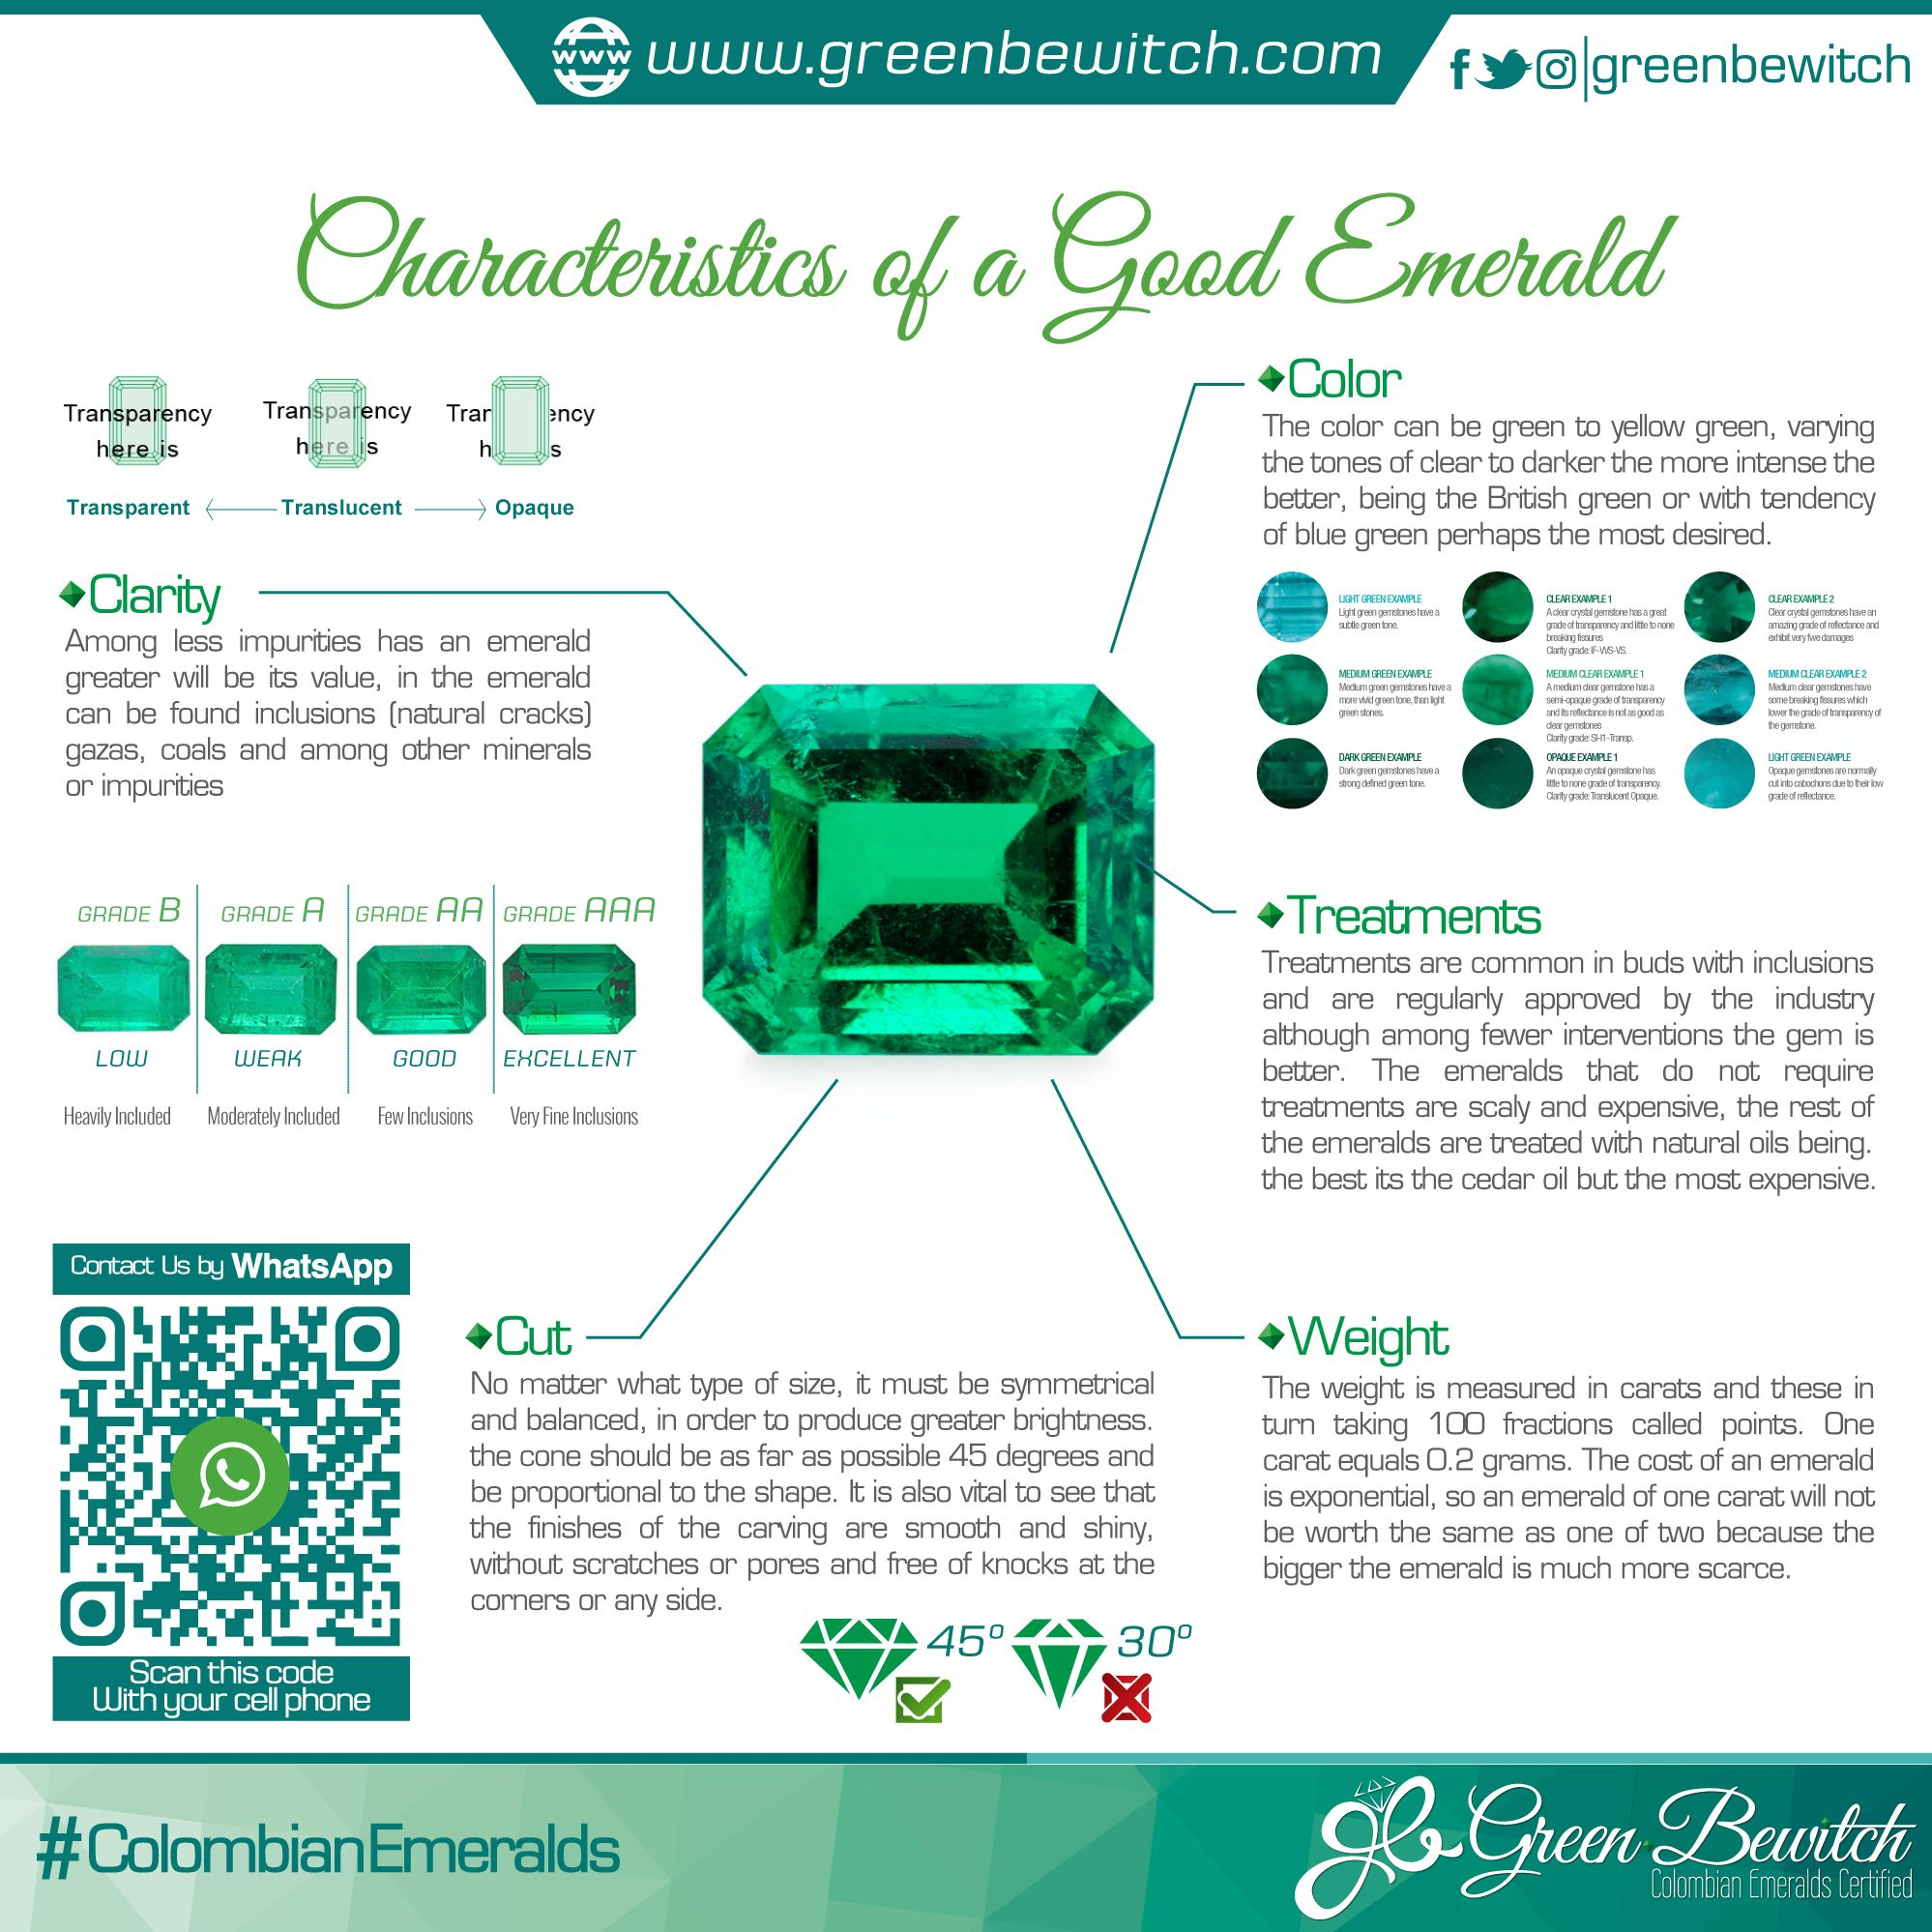 Characteristics of  colombian emerald greenbewitch also learn all about emeralds engagement ring favs rh pinterest